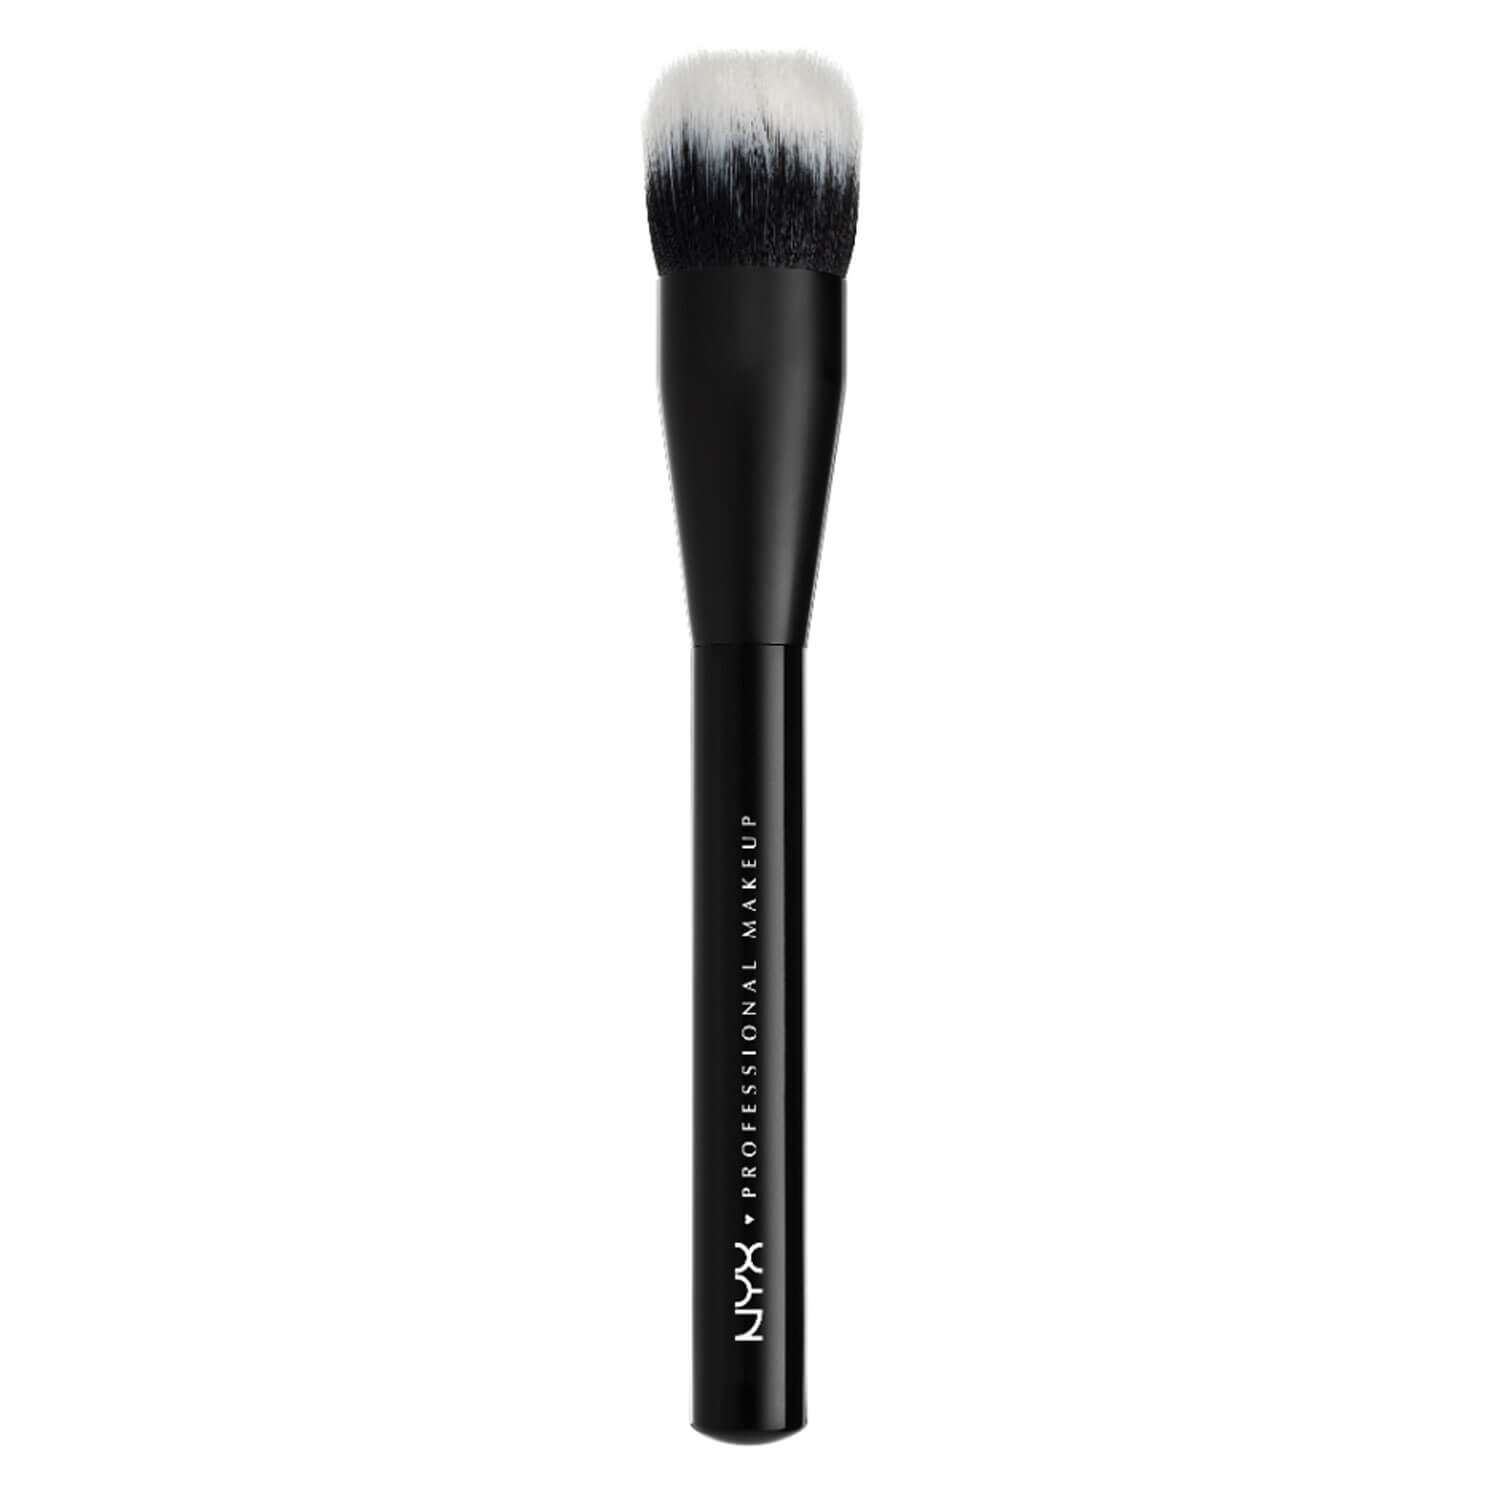 Pro Brush - Dual Fiber Foundation Brush